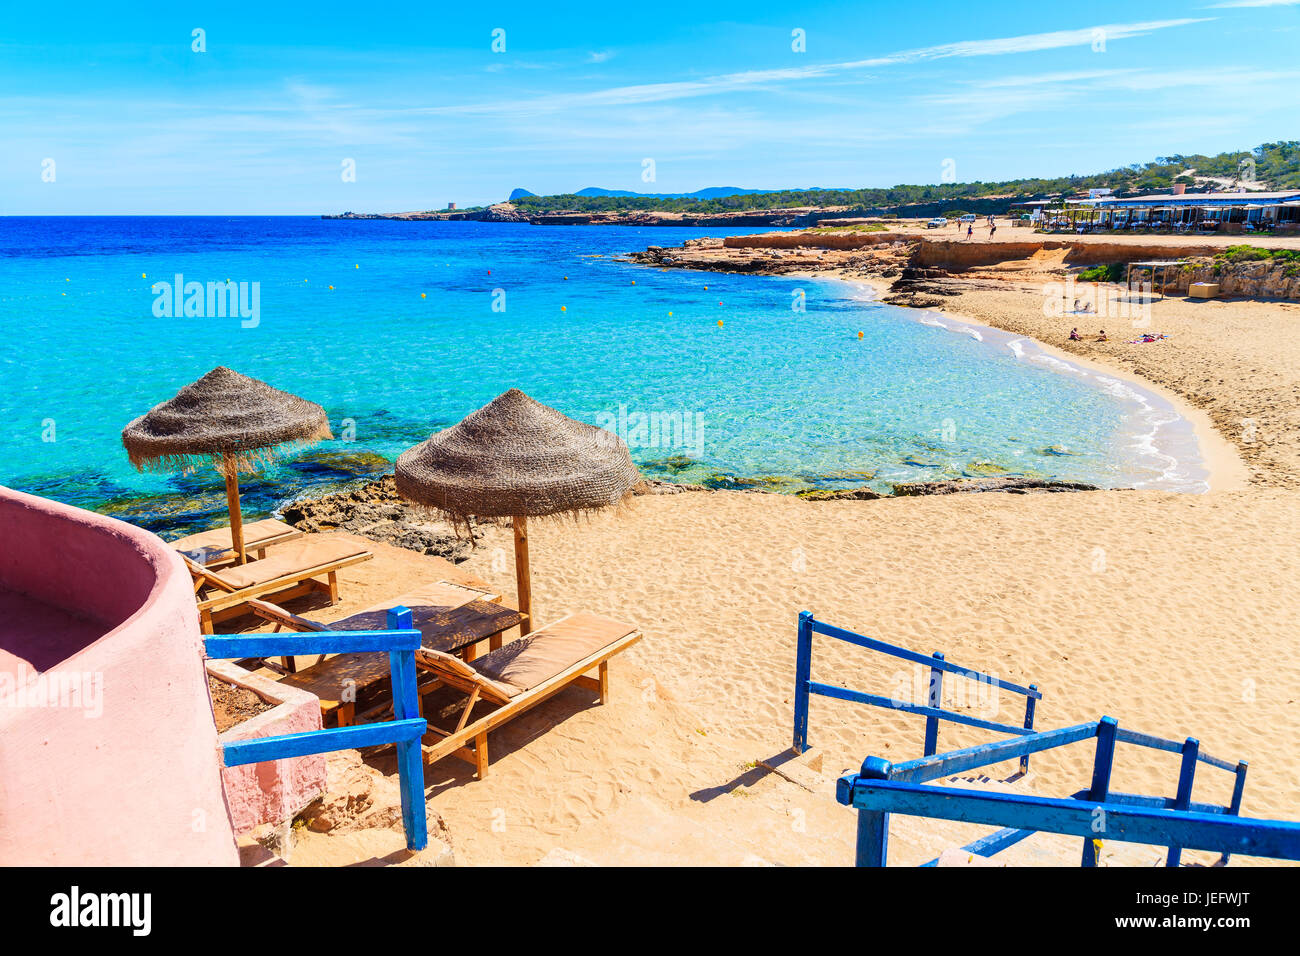 Steps from coastal bar to Cala Comte beach, Ibiza island, Spain - Stock Image